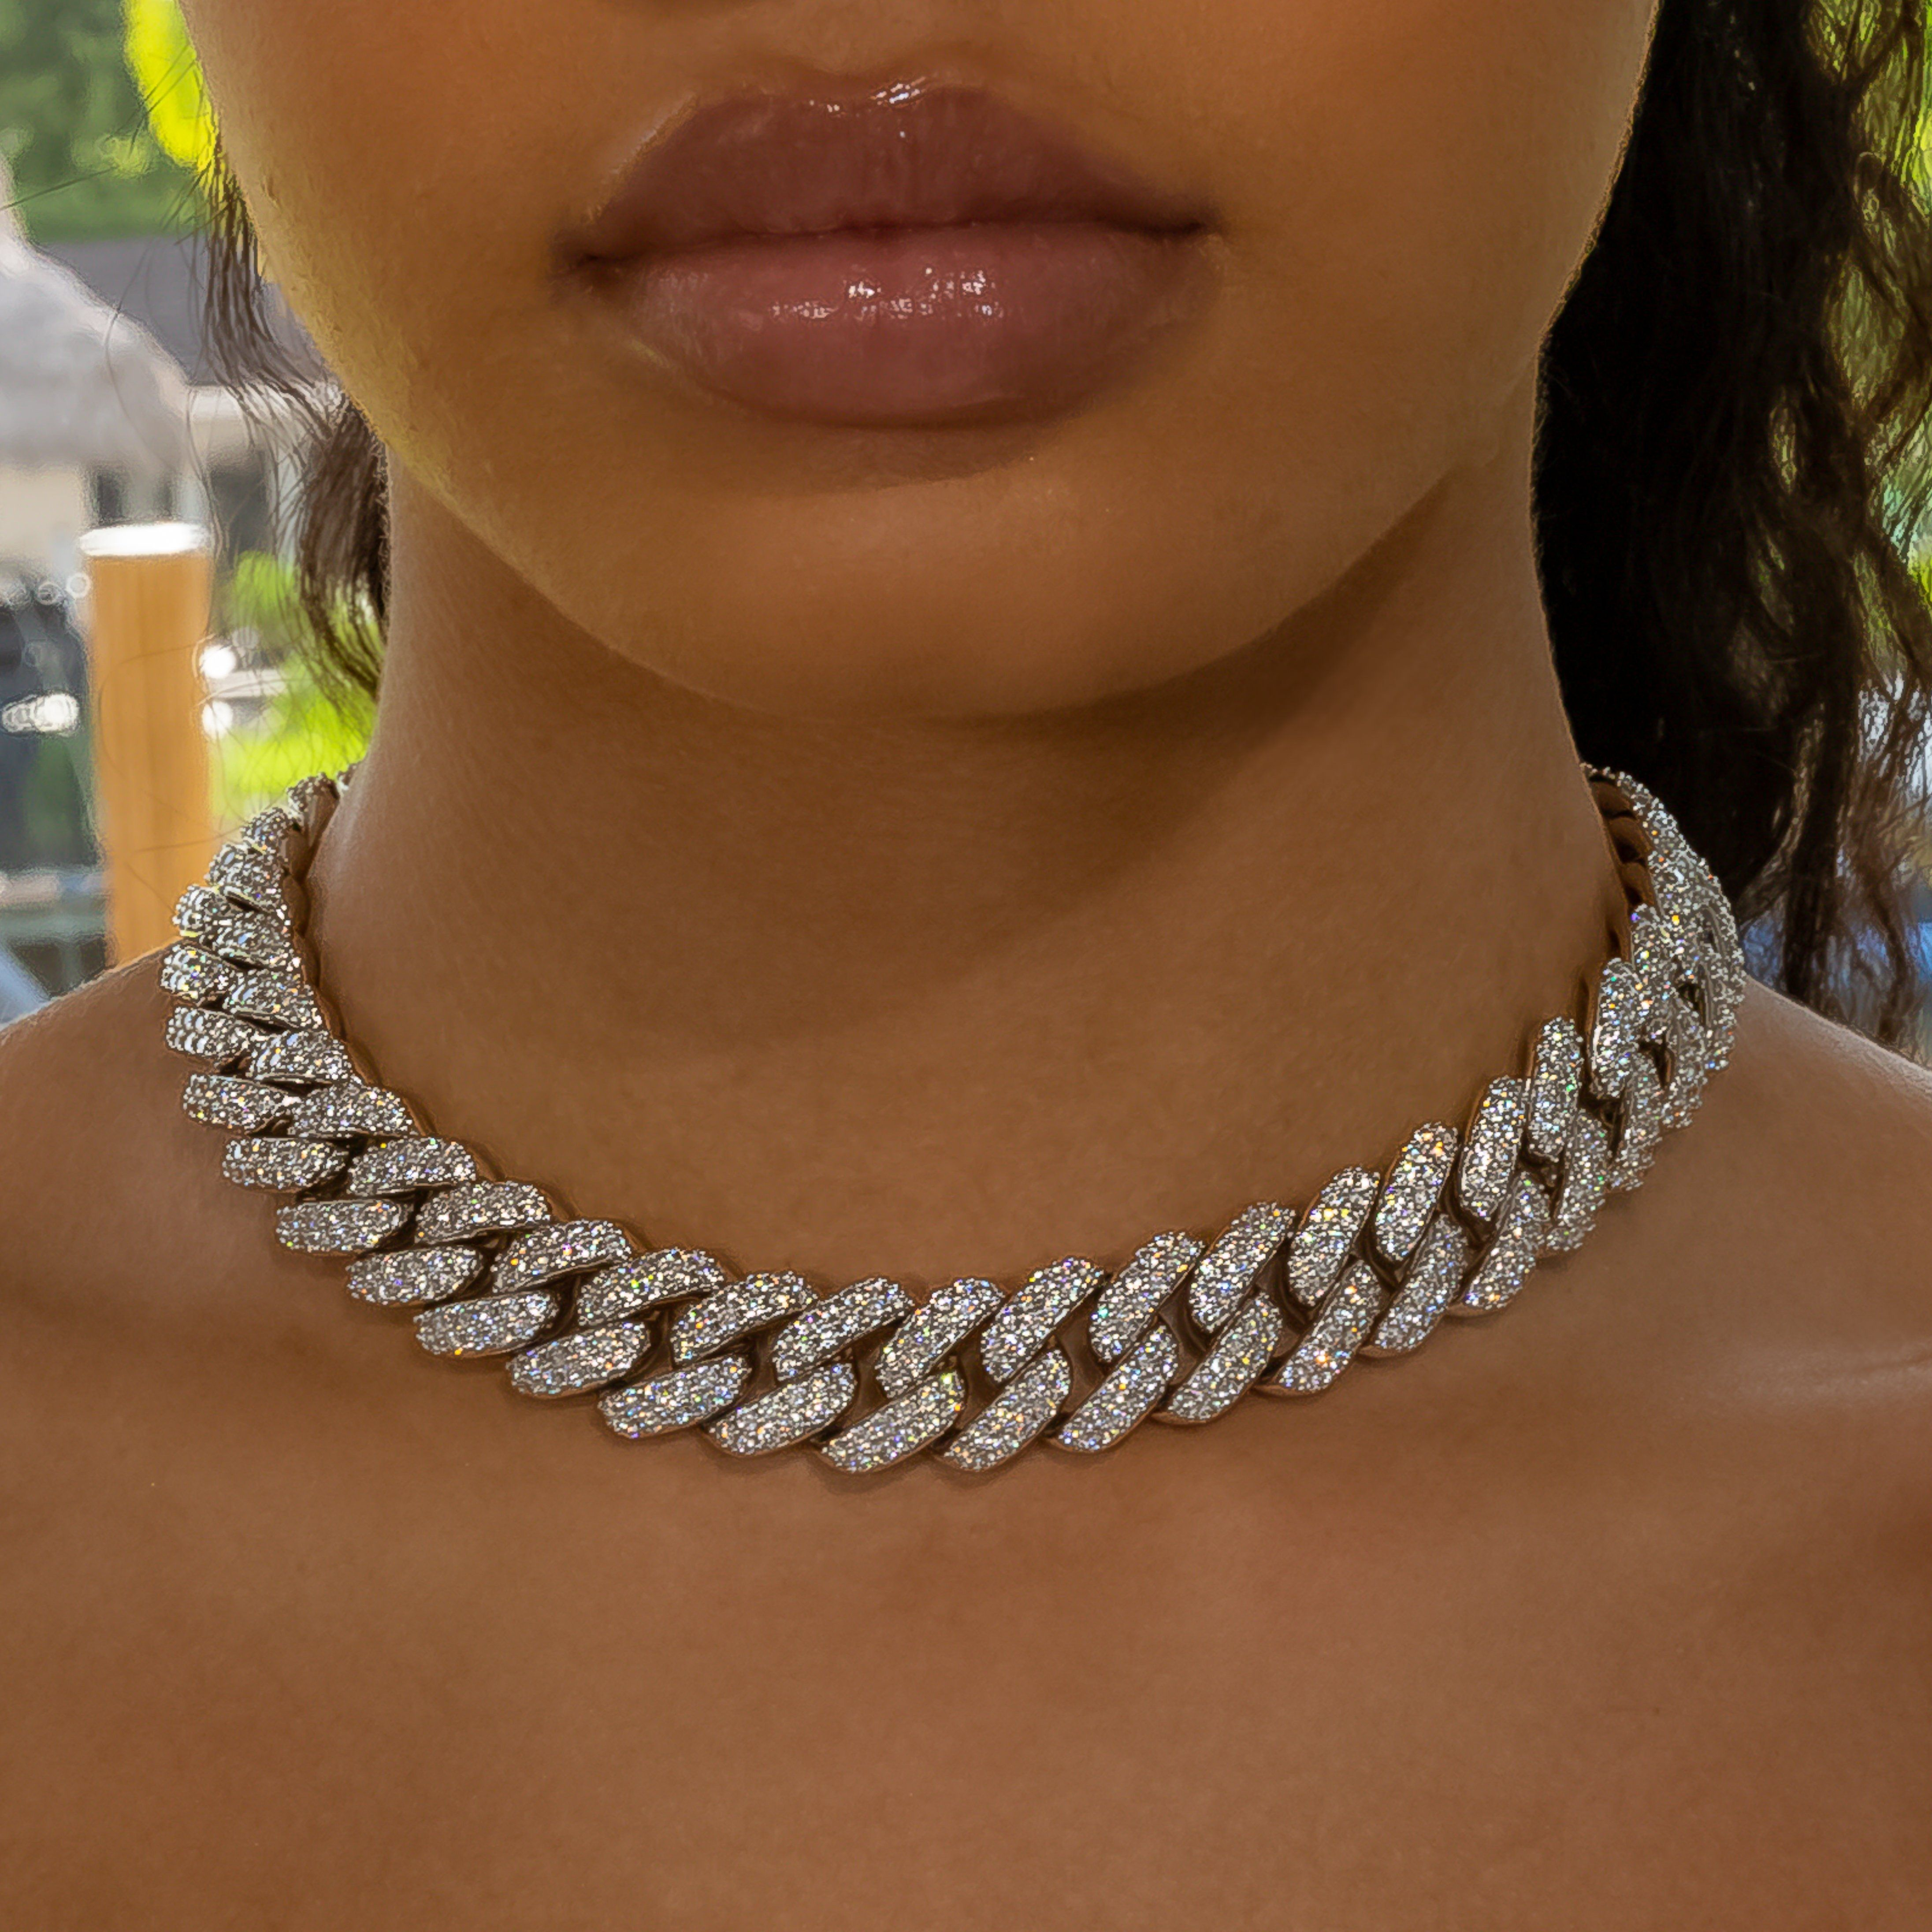 18mm White Gold Flower Set Cuban Link Necklace In 2021 Cuban Link Necklace Link Necklace Chain Necklace Outfit